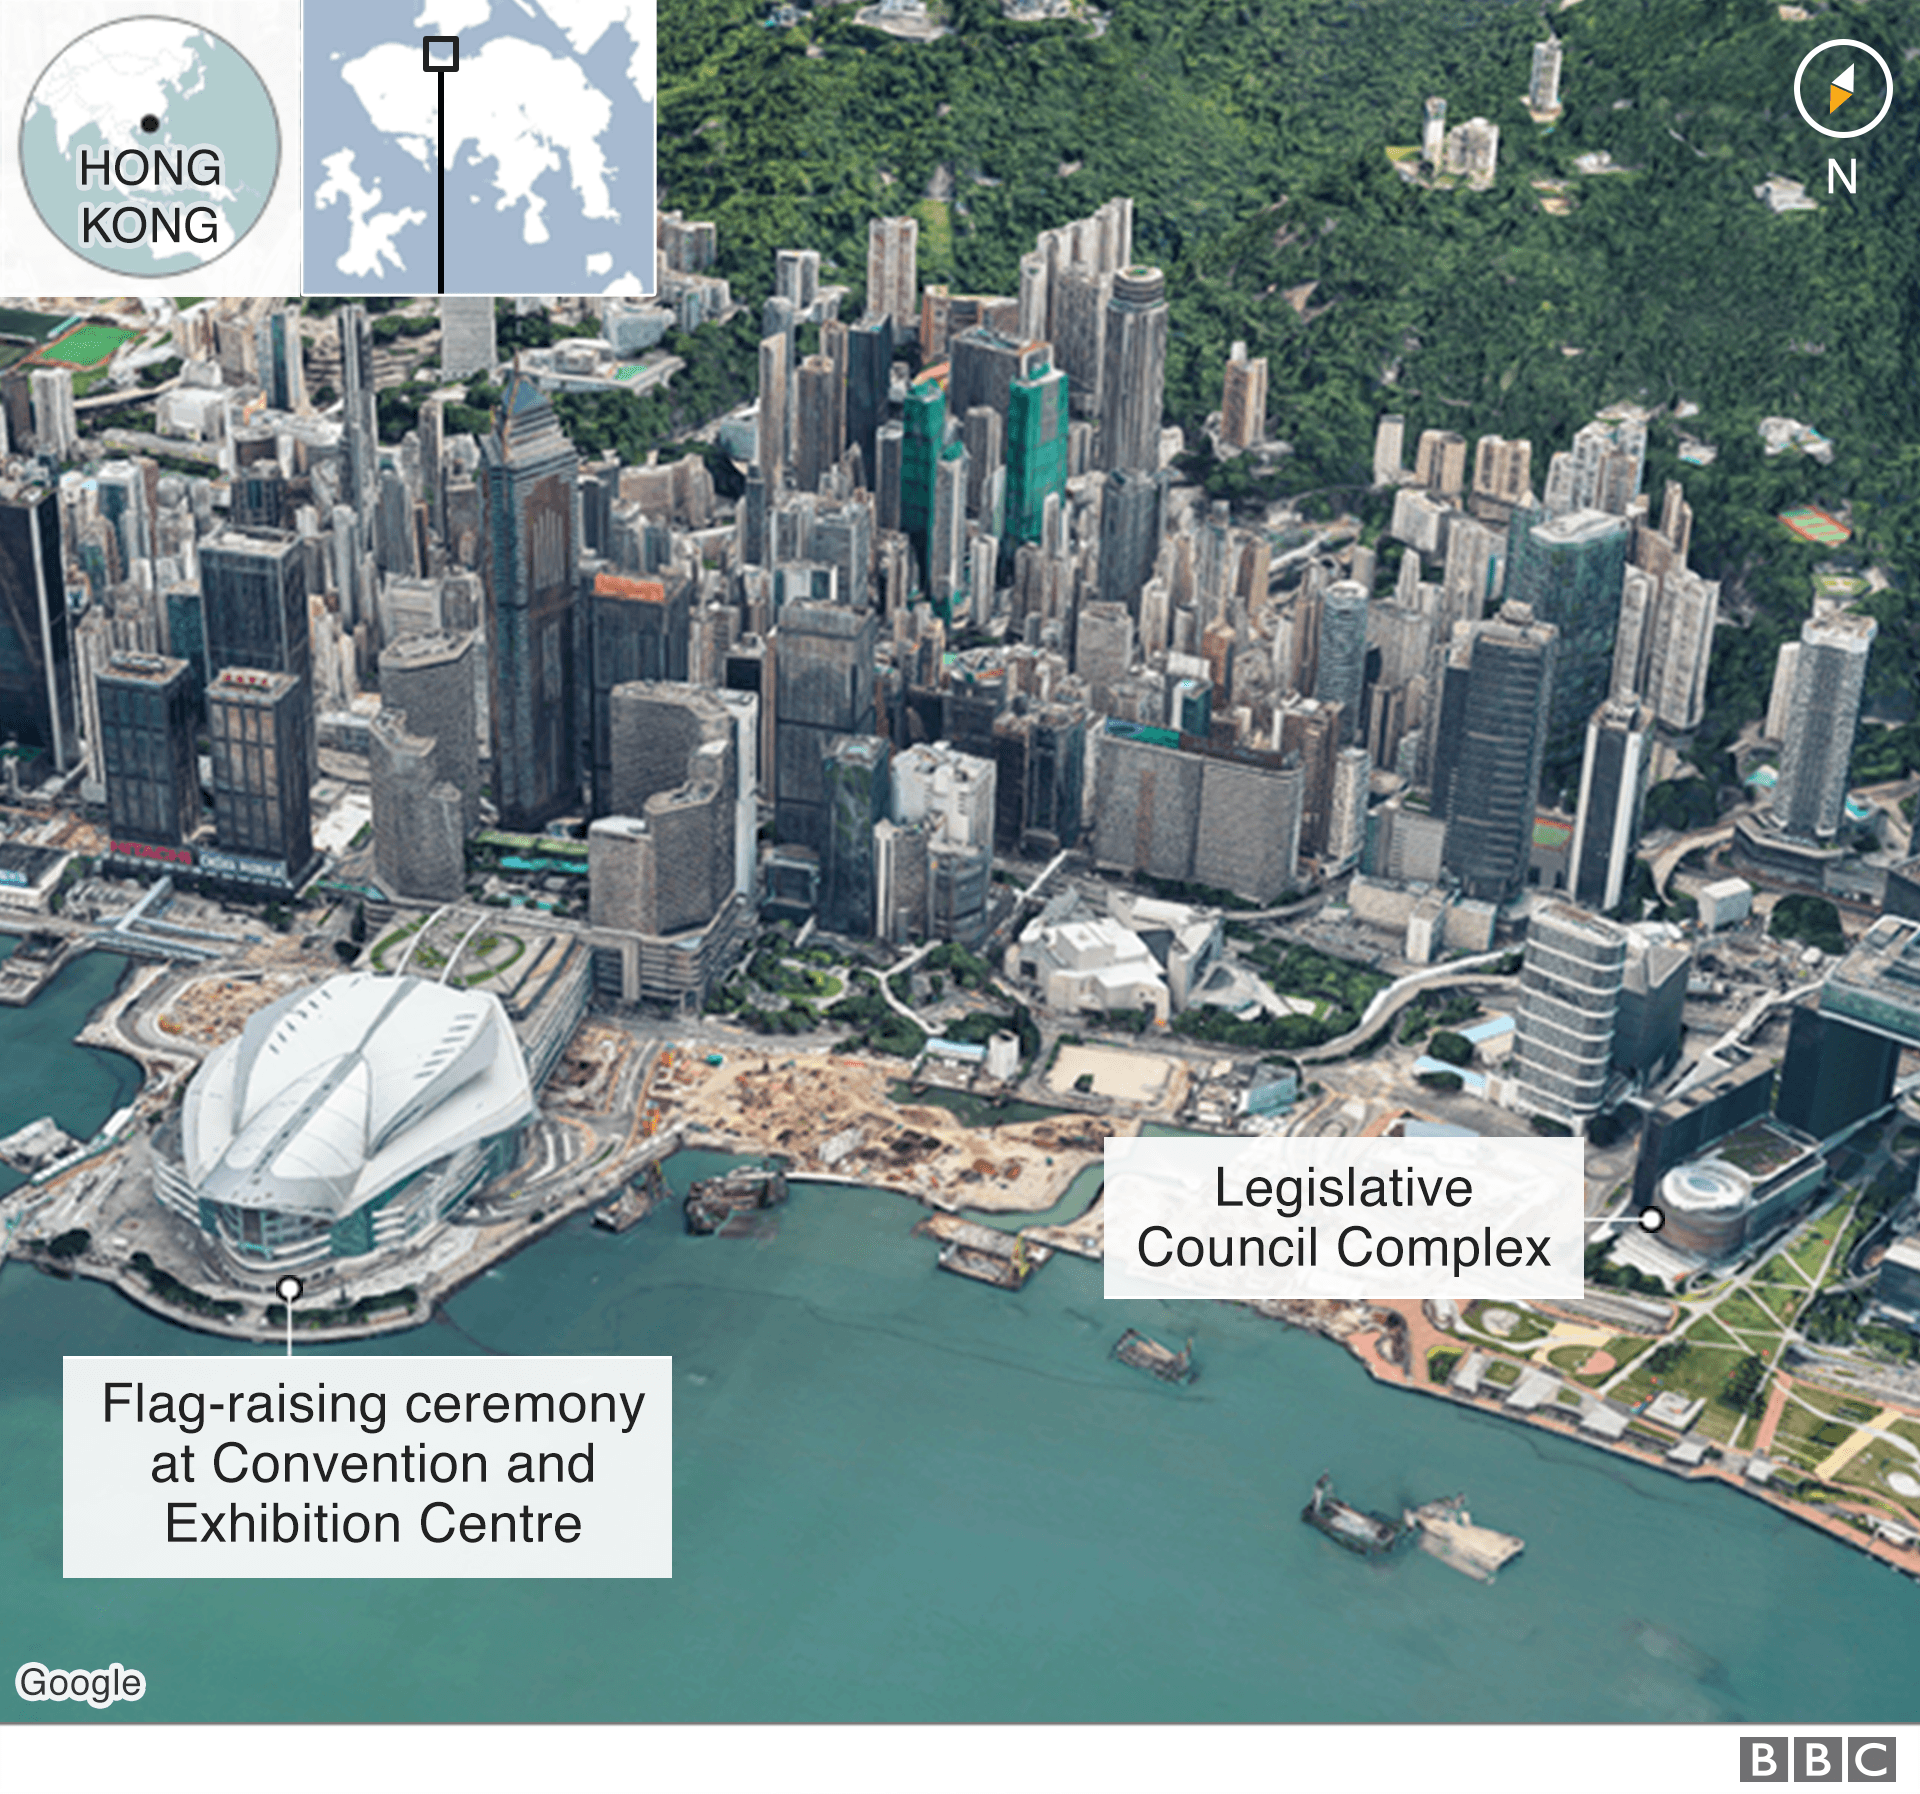 Map showing where ceremony was compared to LegCo building